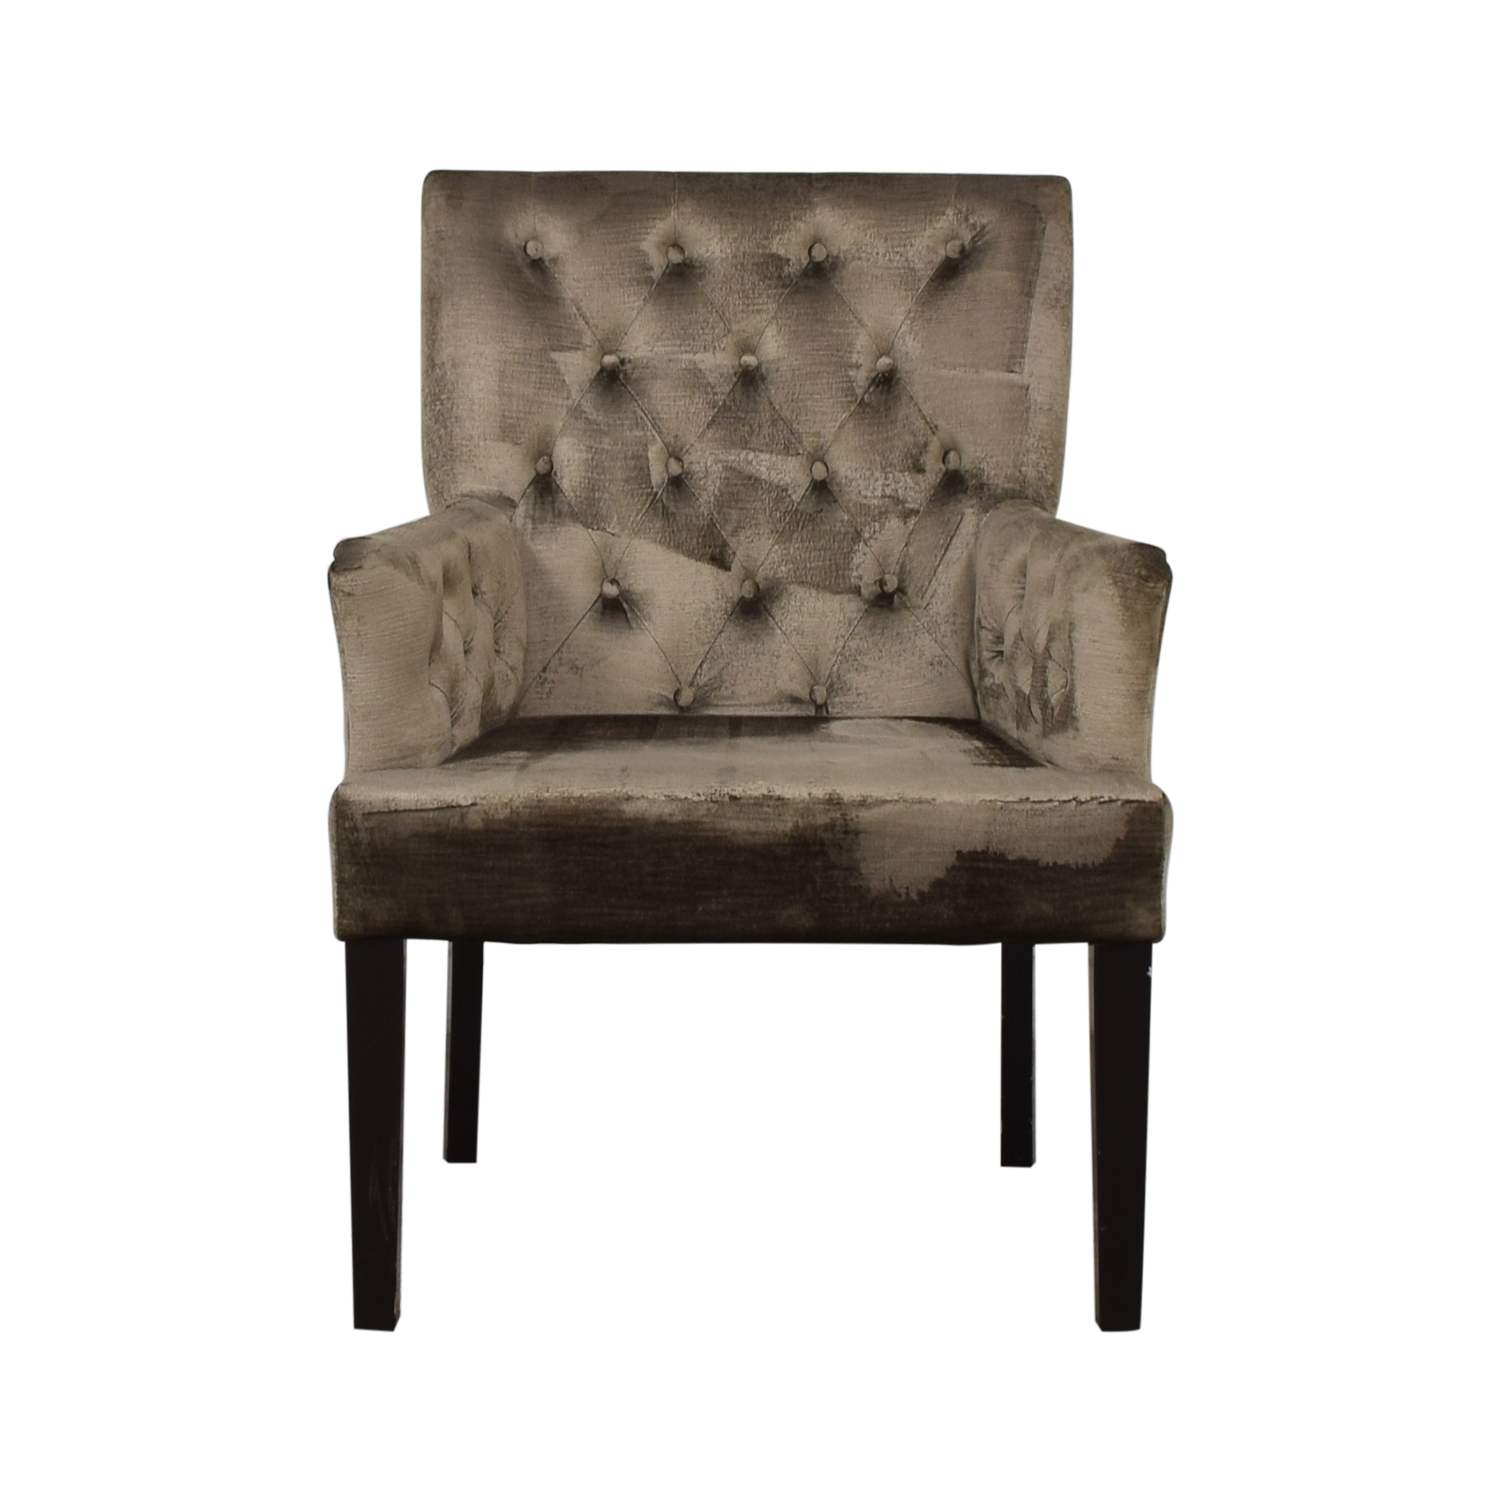 Z Gallerie Z Gallerie Lola Dining Armchair used